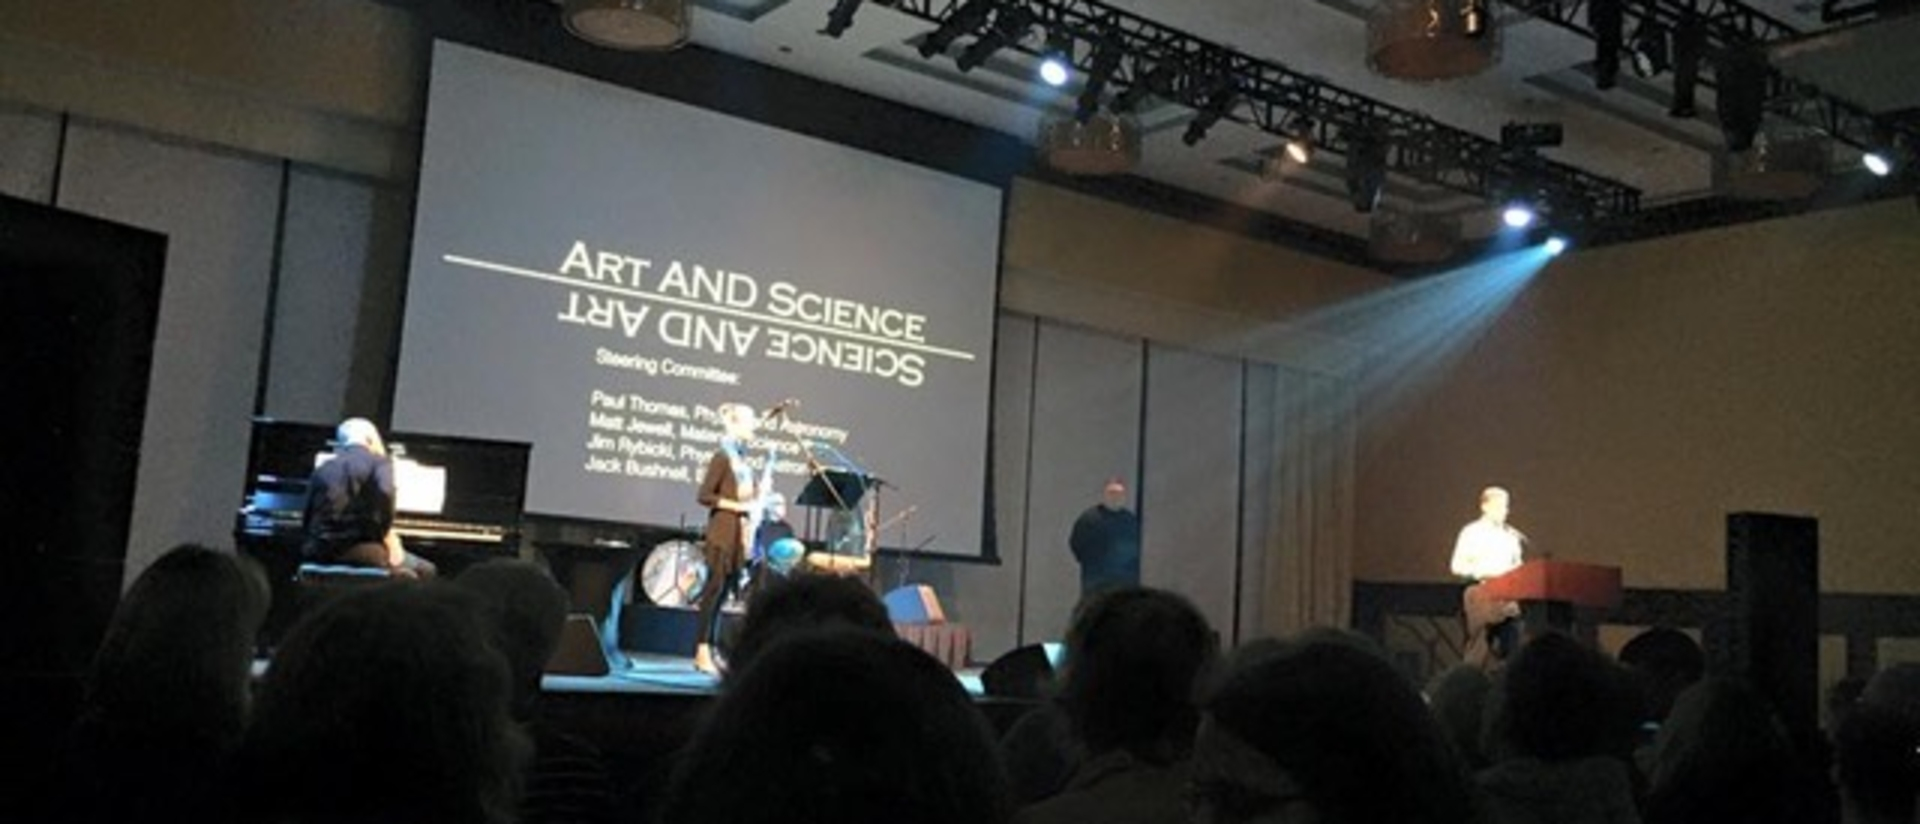 Art AND Science event